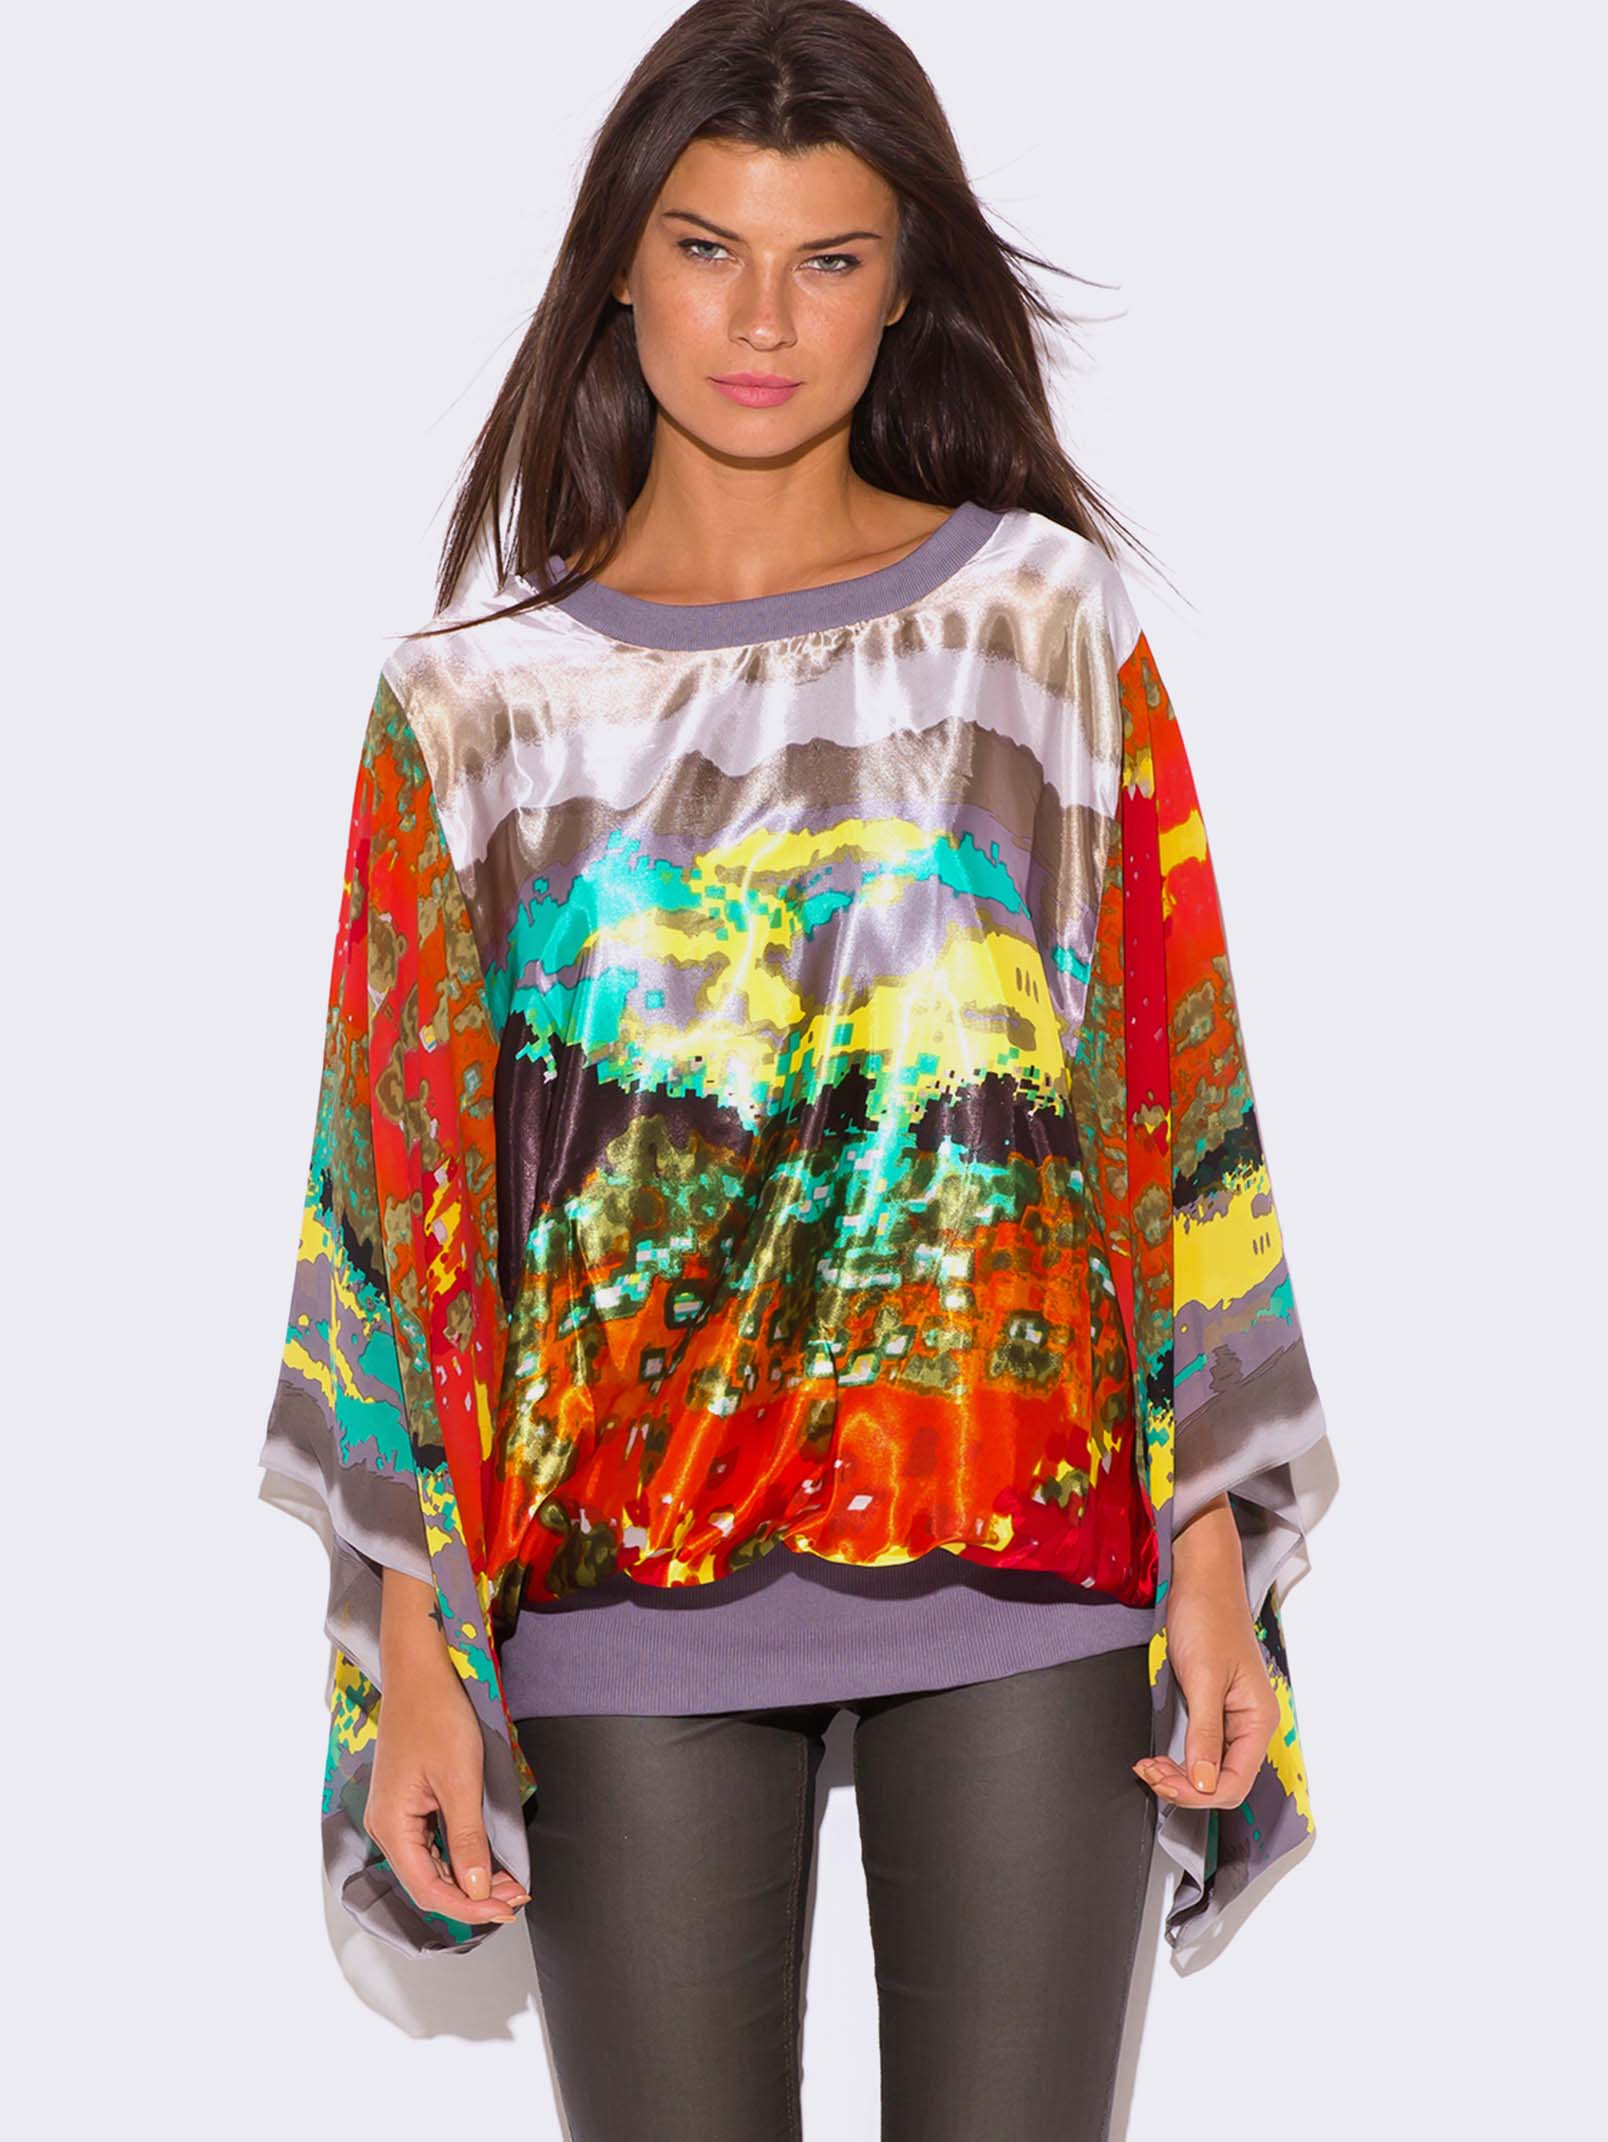 Plus Size Kimono Sleeve Tunic Top Modishonline Com